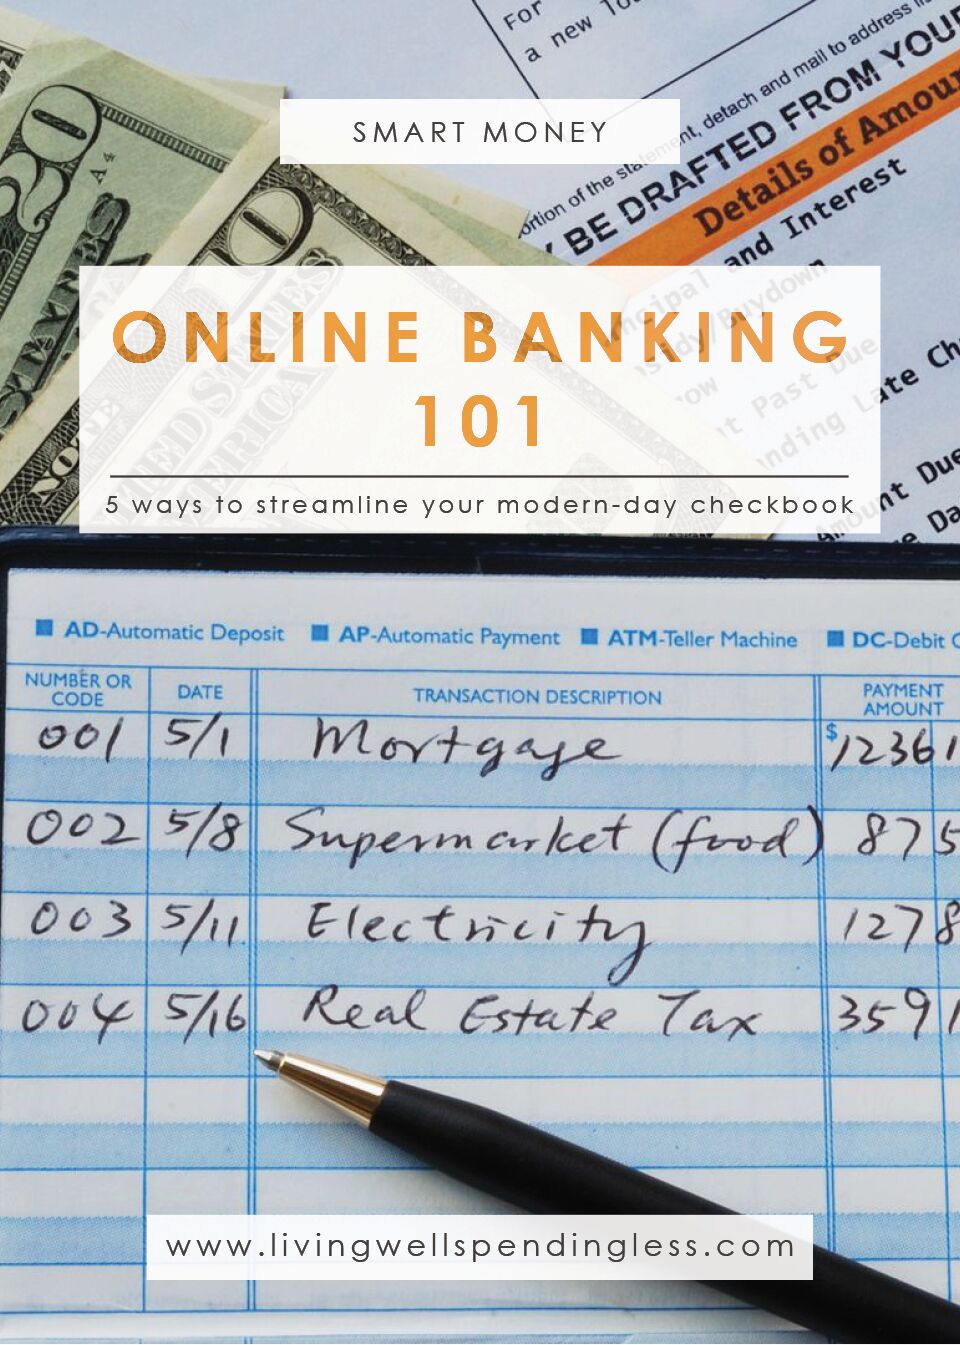 Digital Banking 101 | Streamline Your Modern-Day Checkbook | Money Matters | Managing Your Finances